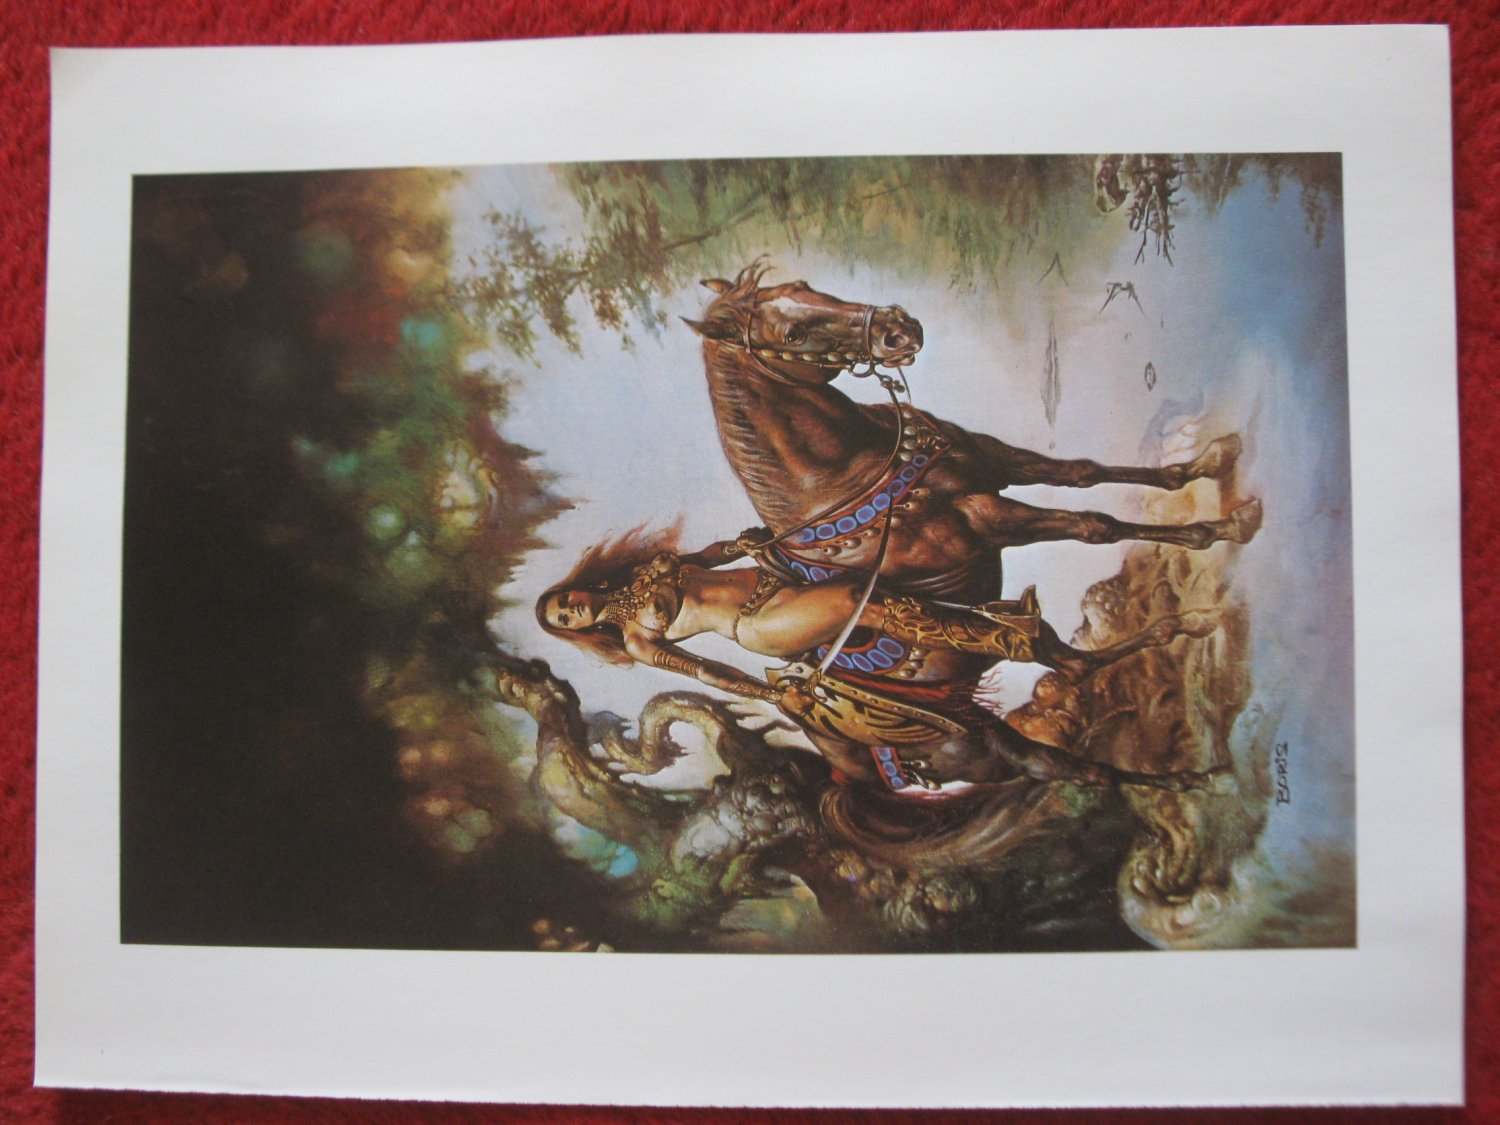 "vintage Boris Vallejo: Demon in the Mirror- 11.5"" x 8.5"" Book Plate Print"